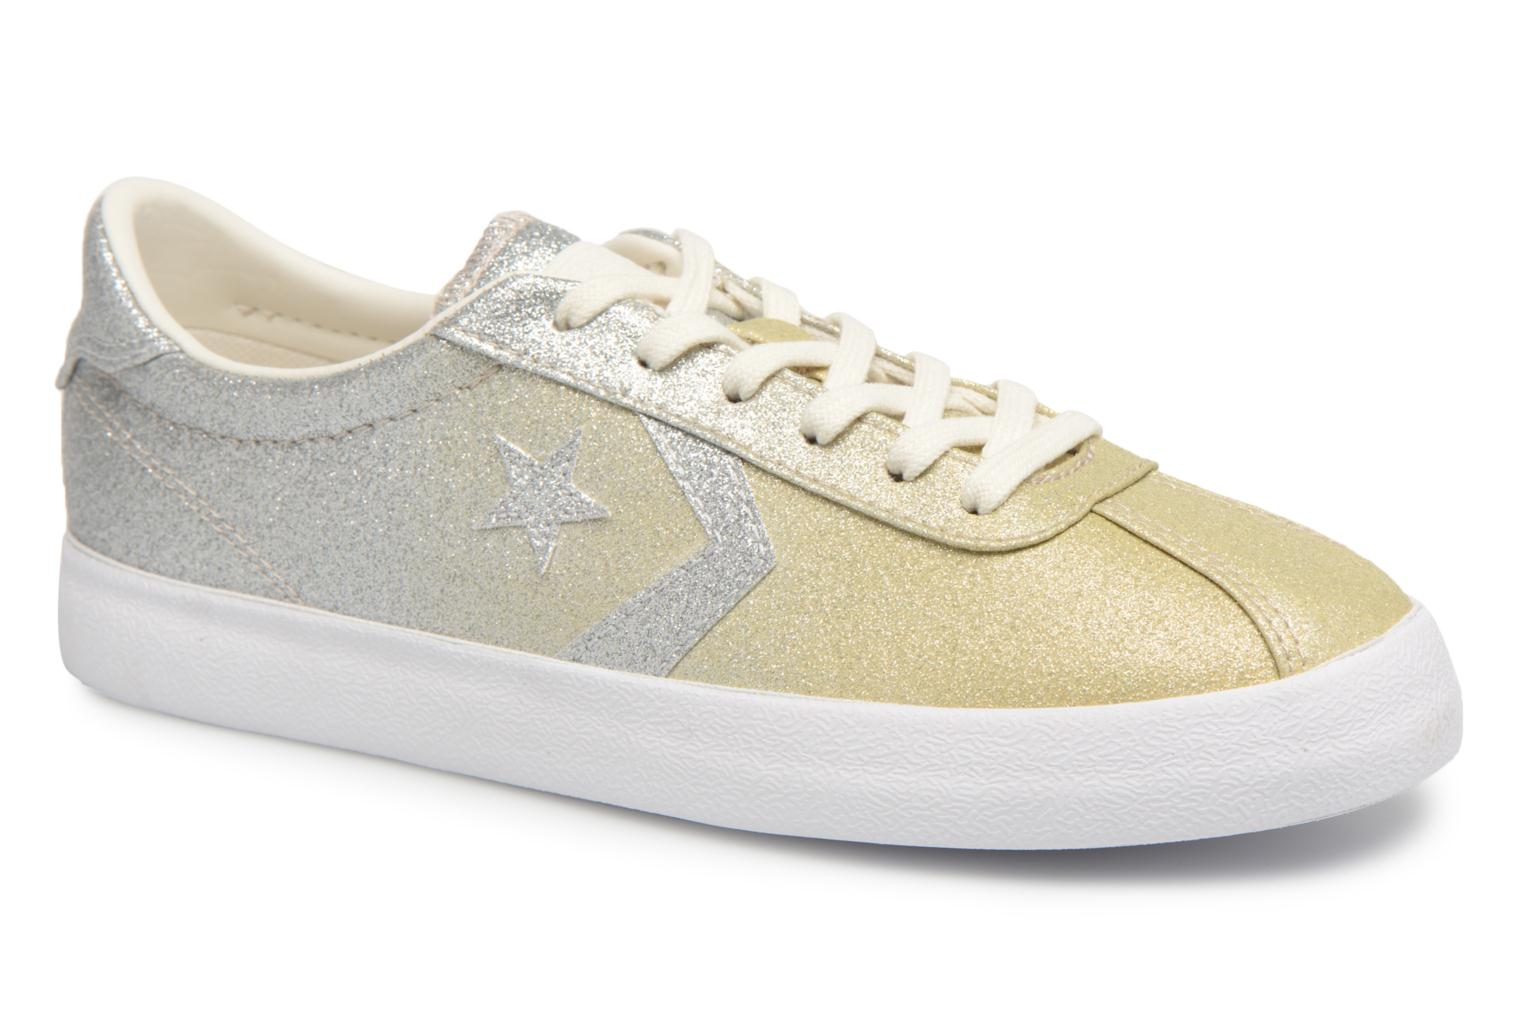 Converse Breakpoint Ombre Metallic Ox Or Or Ox et bronze Baskets chez 2af65b